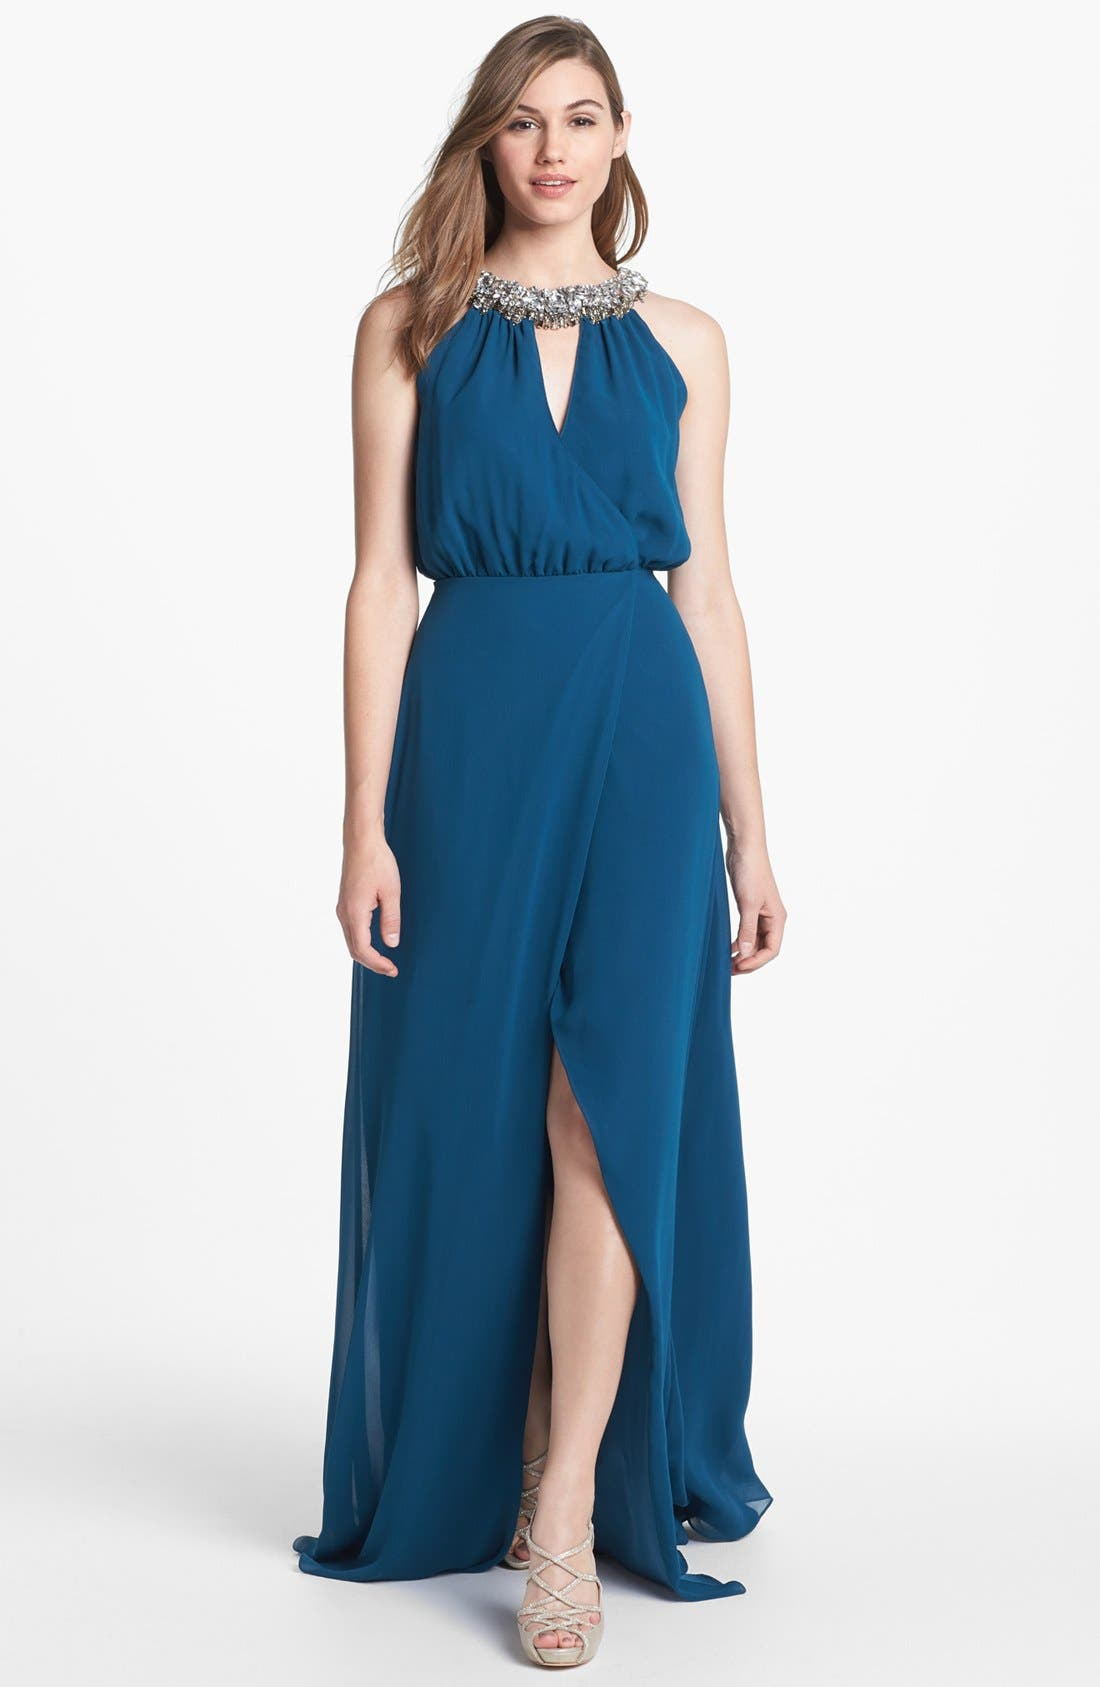 Alternate Image 1 Selected - ERIN erin fetherston Embellished Faux Wrap Chiffon Gown